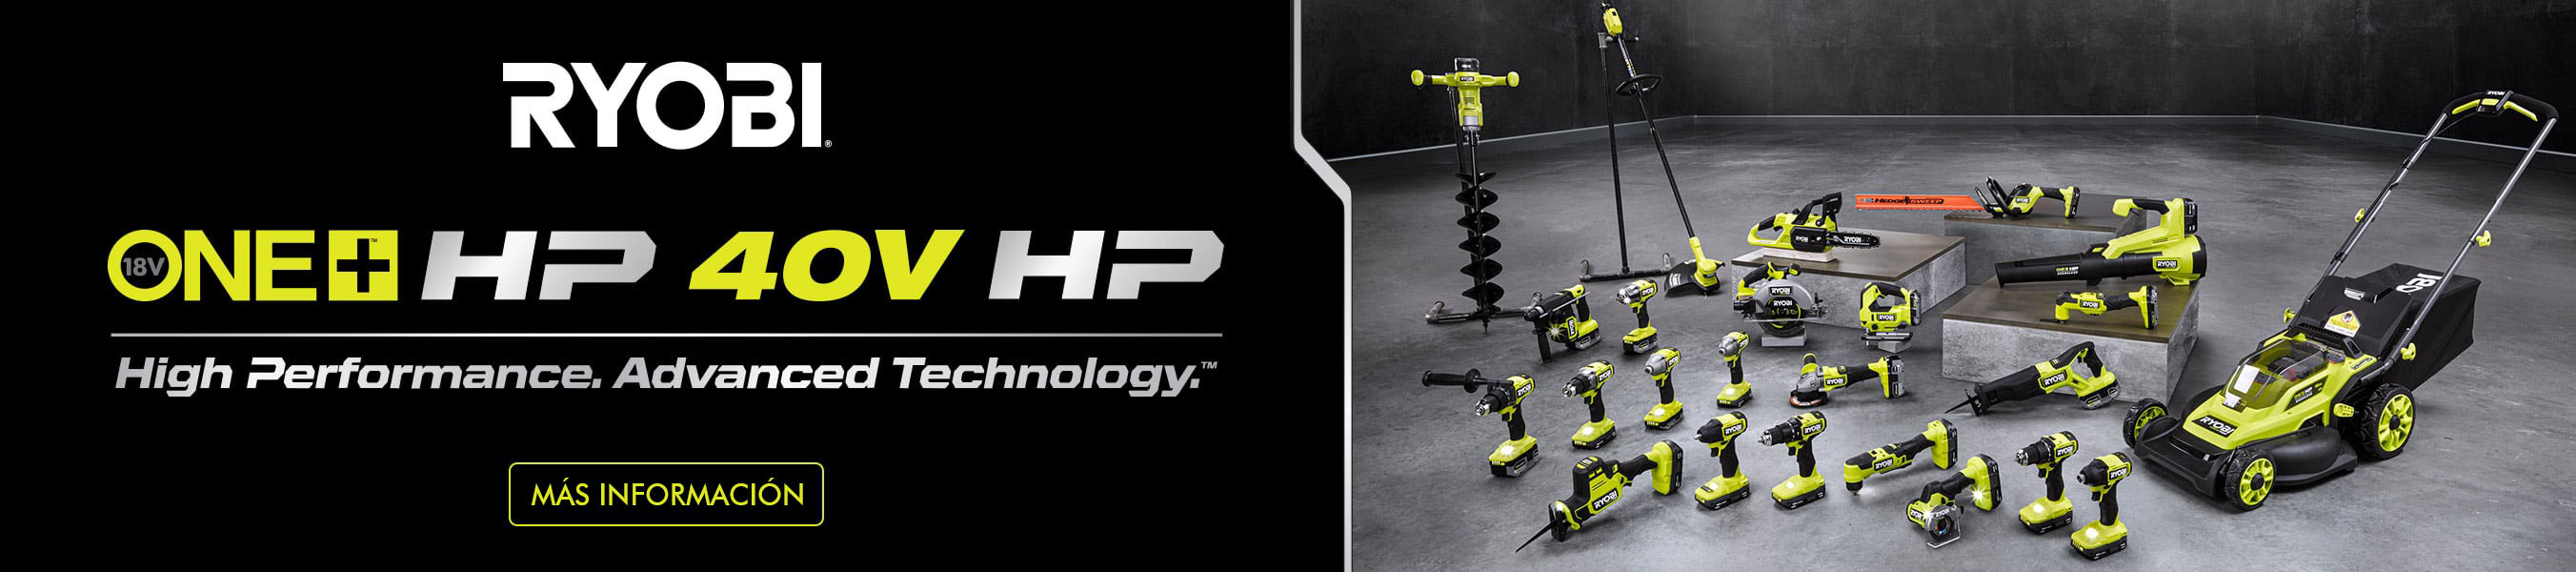 RYOBI ONE+ HP: High Performance. Advanced Technology.